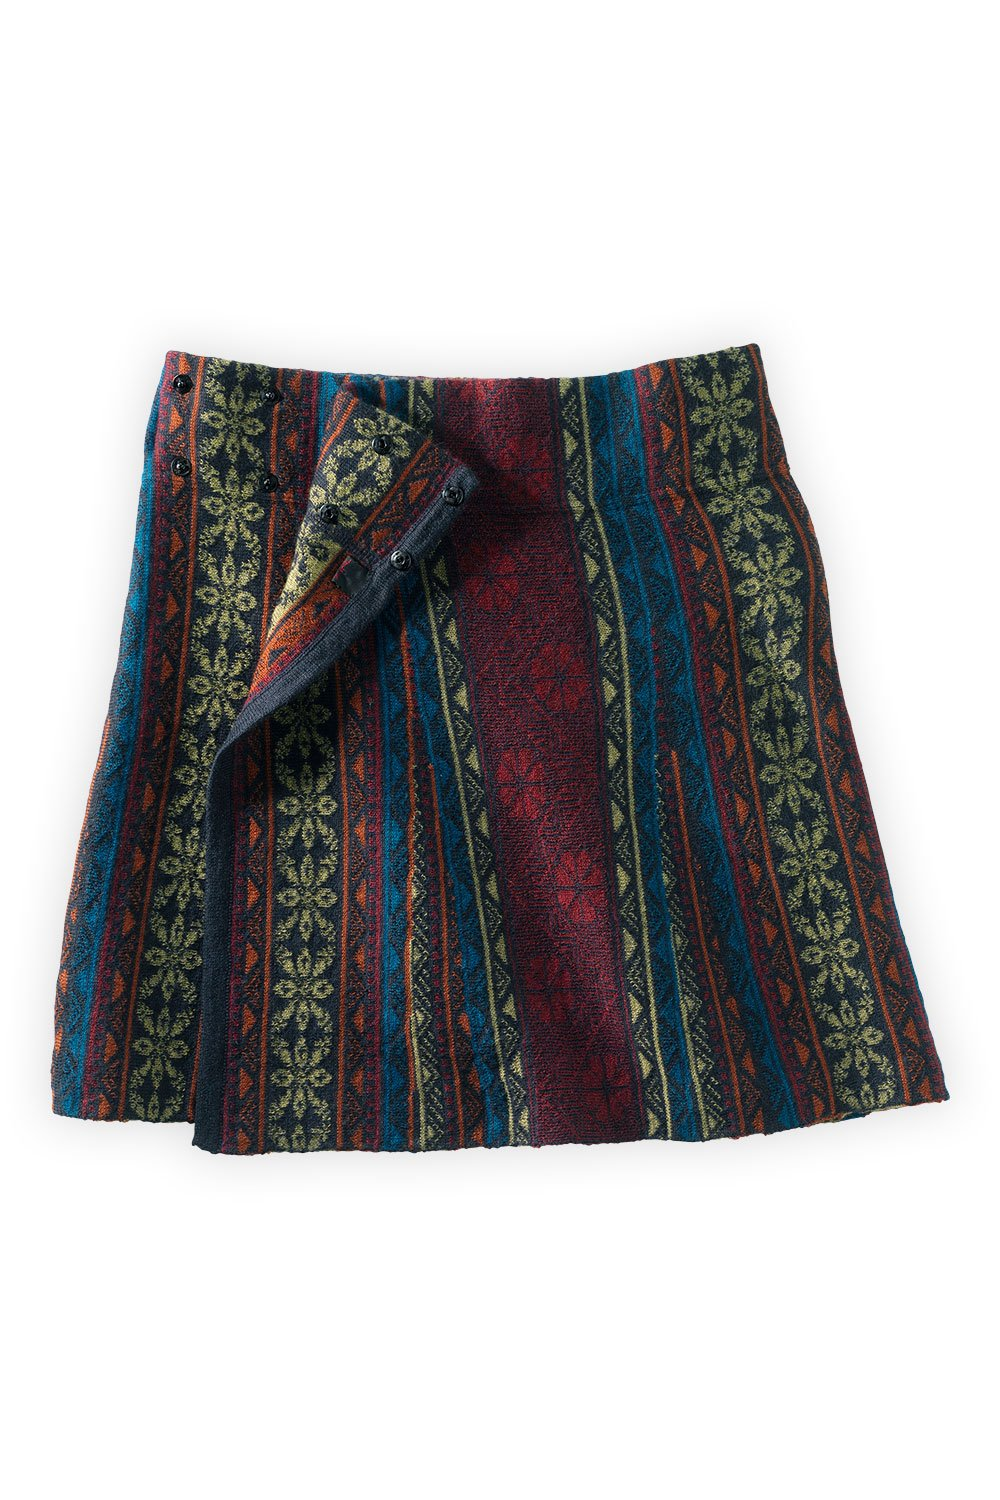 Tey-Art Venetian Blue Jacquard Skirt (One Size, Blue Multi)